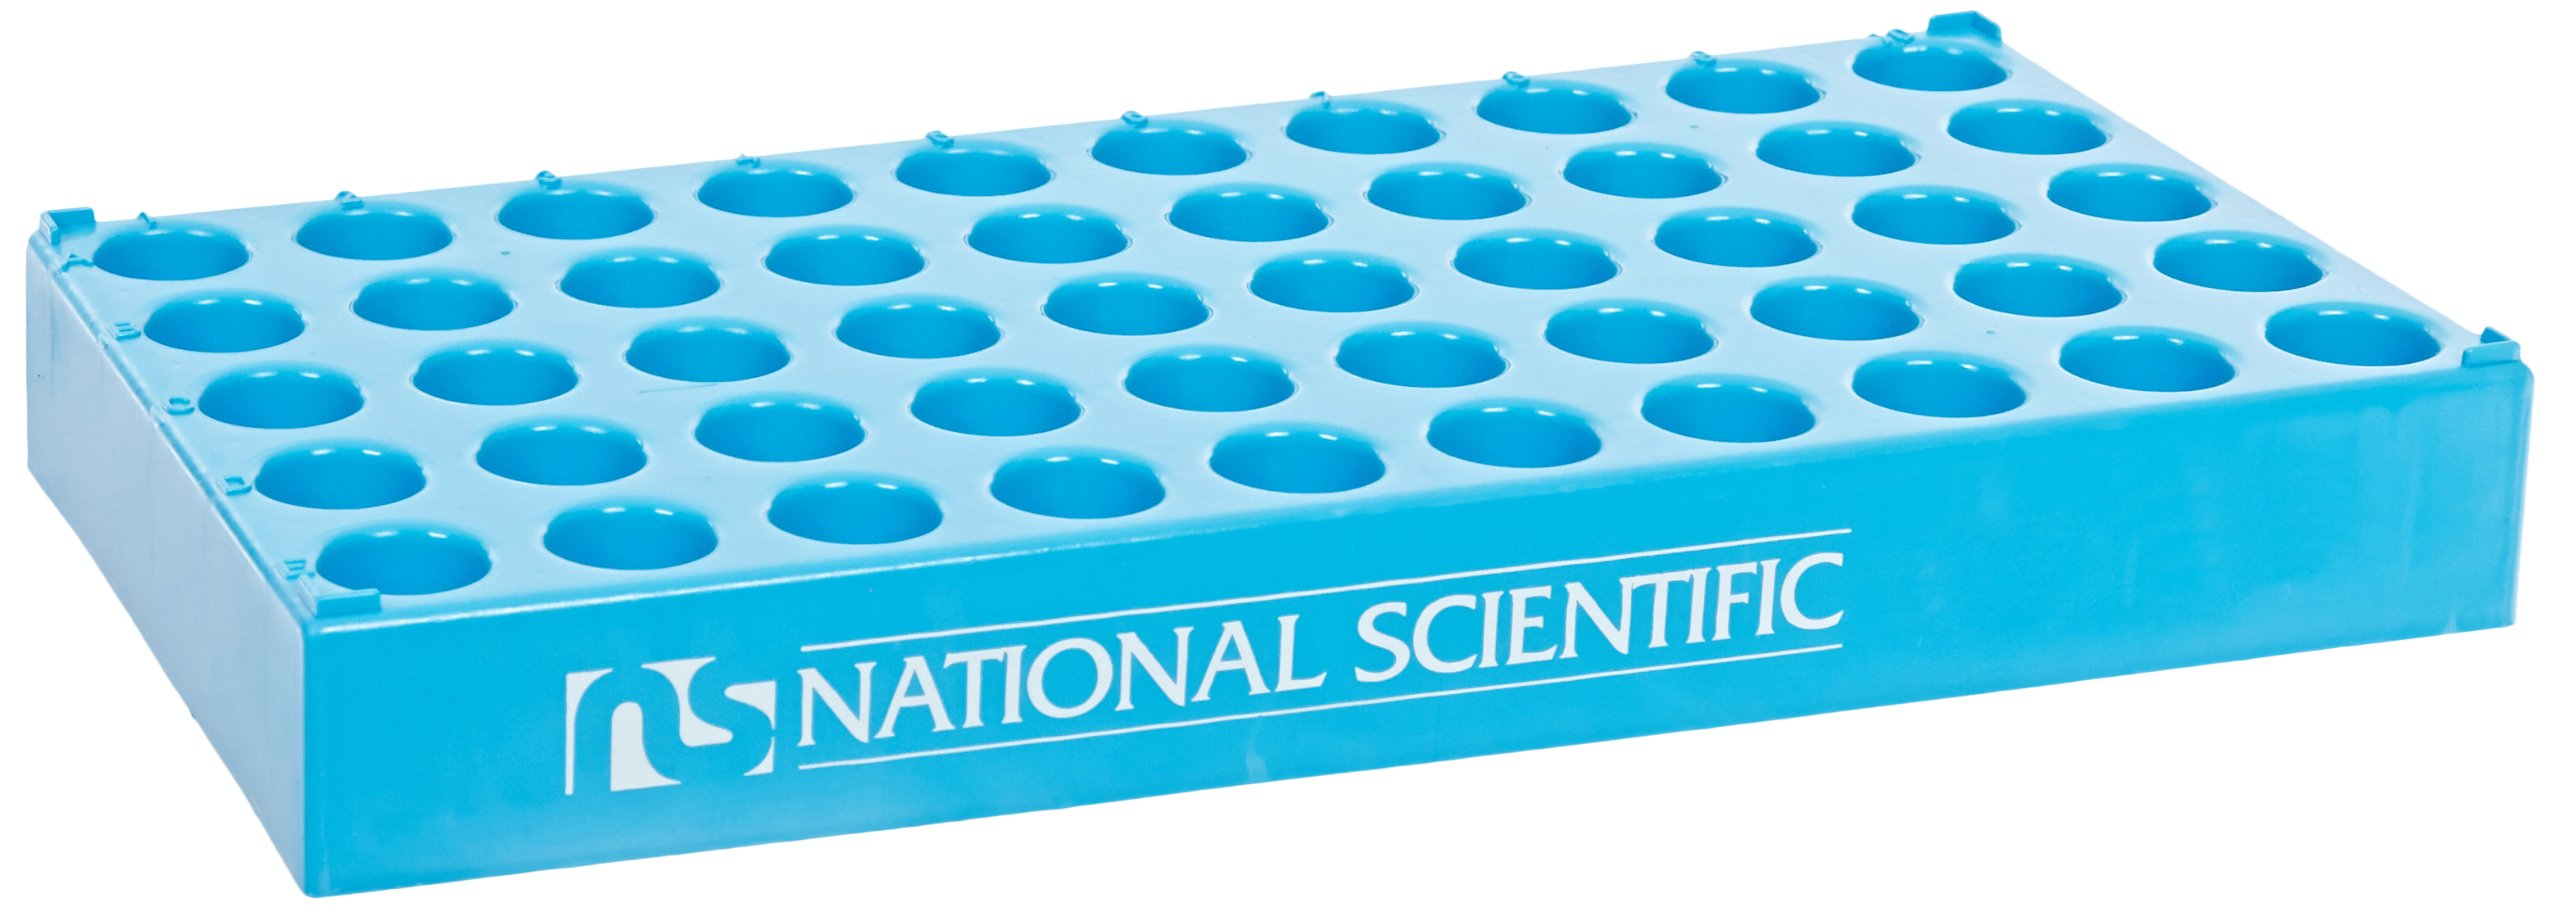 National Scientific C4015-25 Polypropylene Vial Rack for 15mm Diameter Vial (Case of 5)